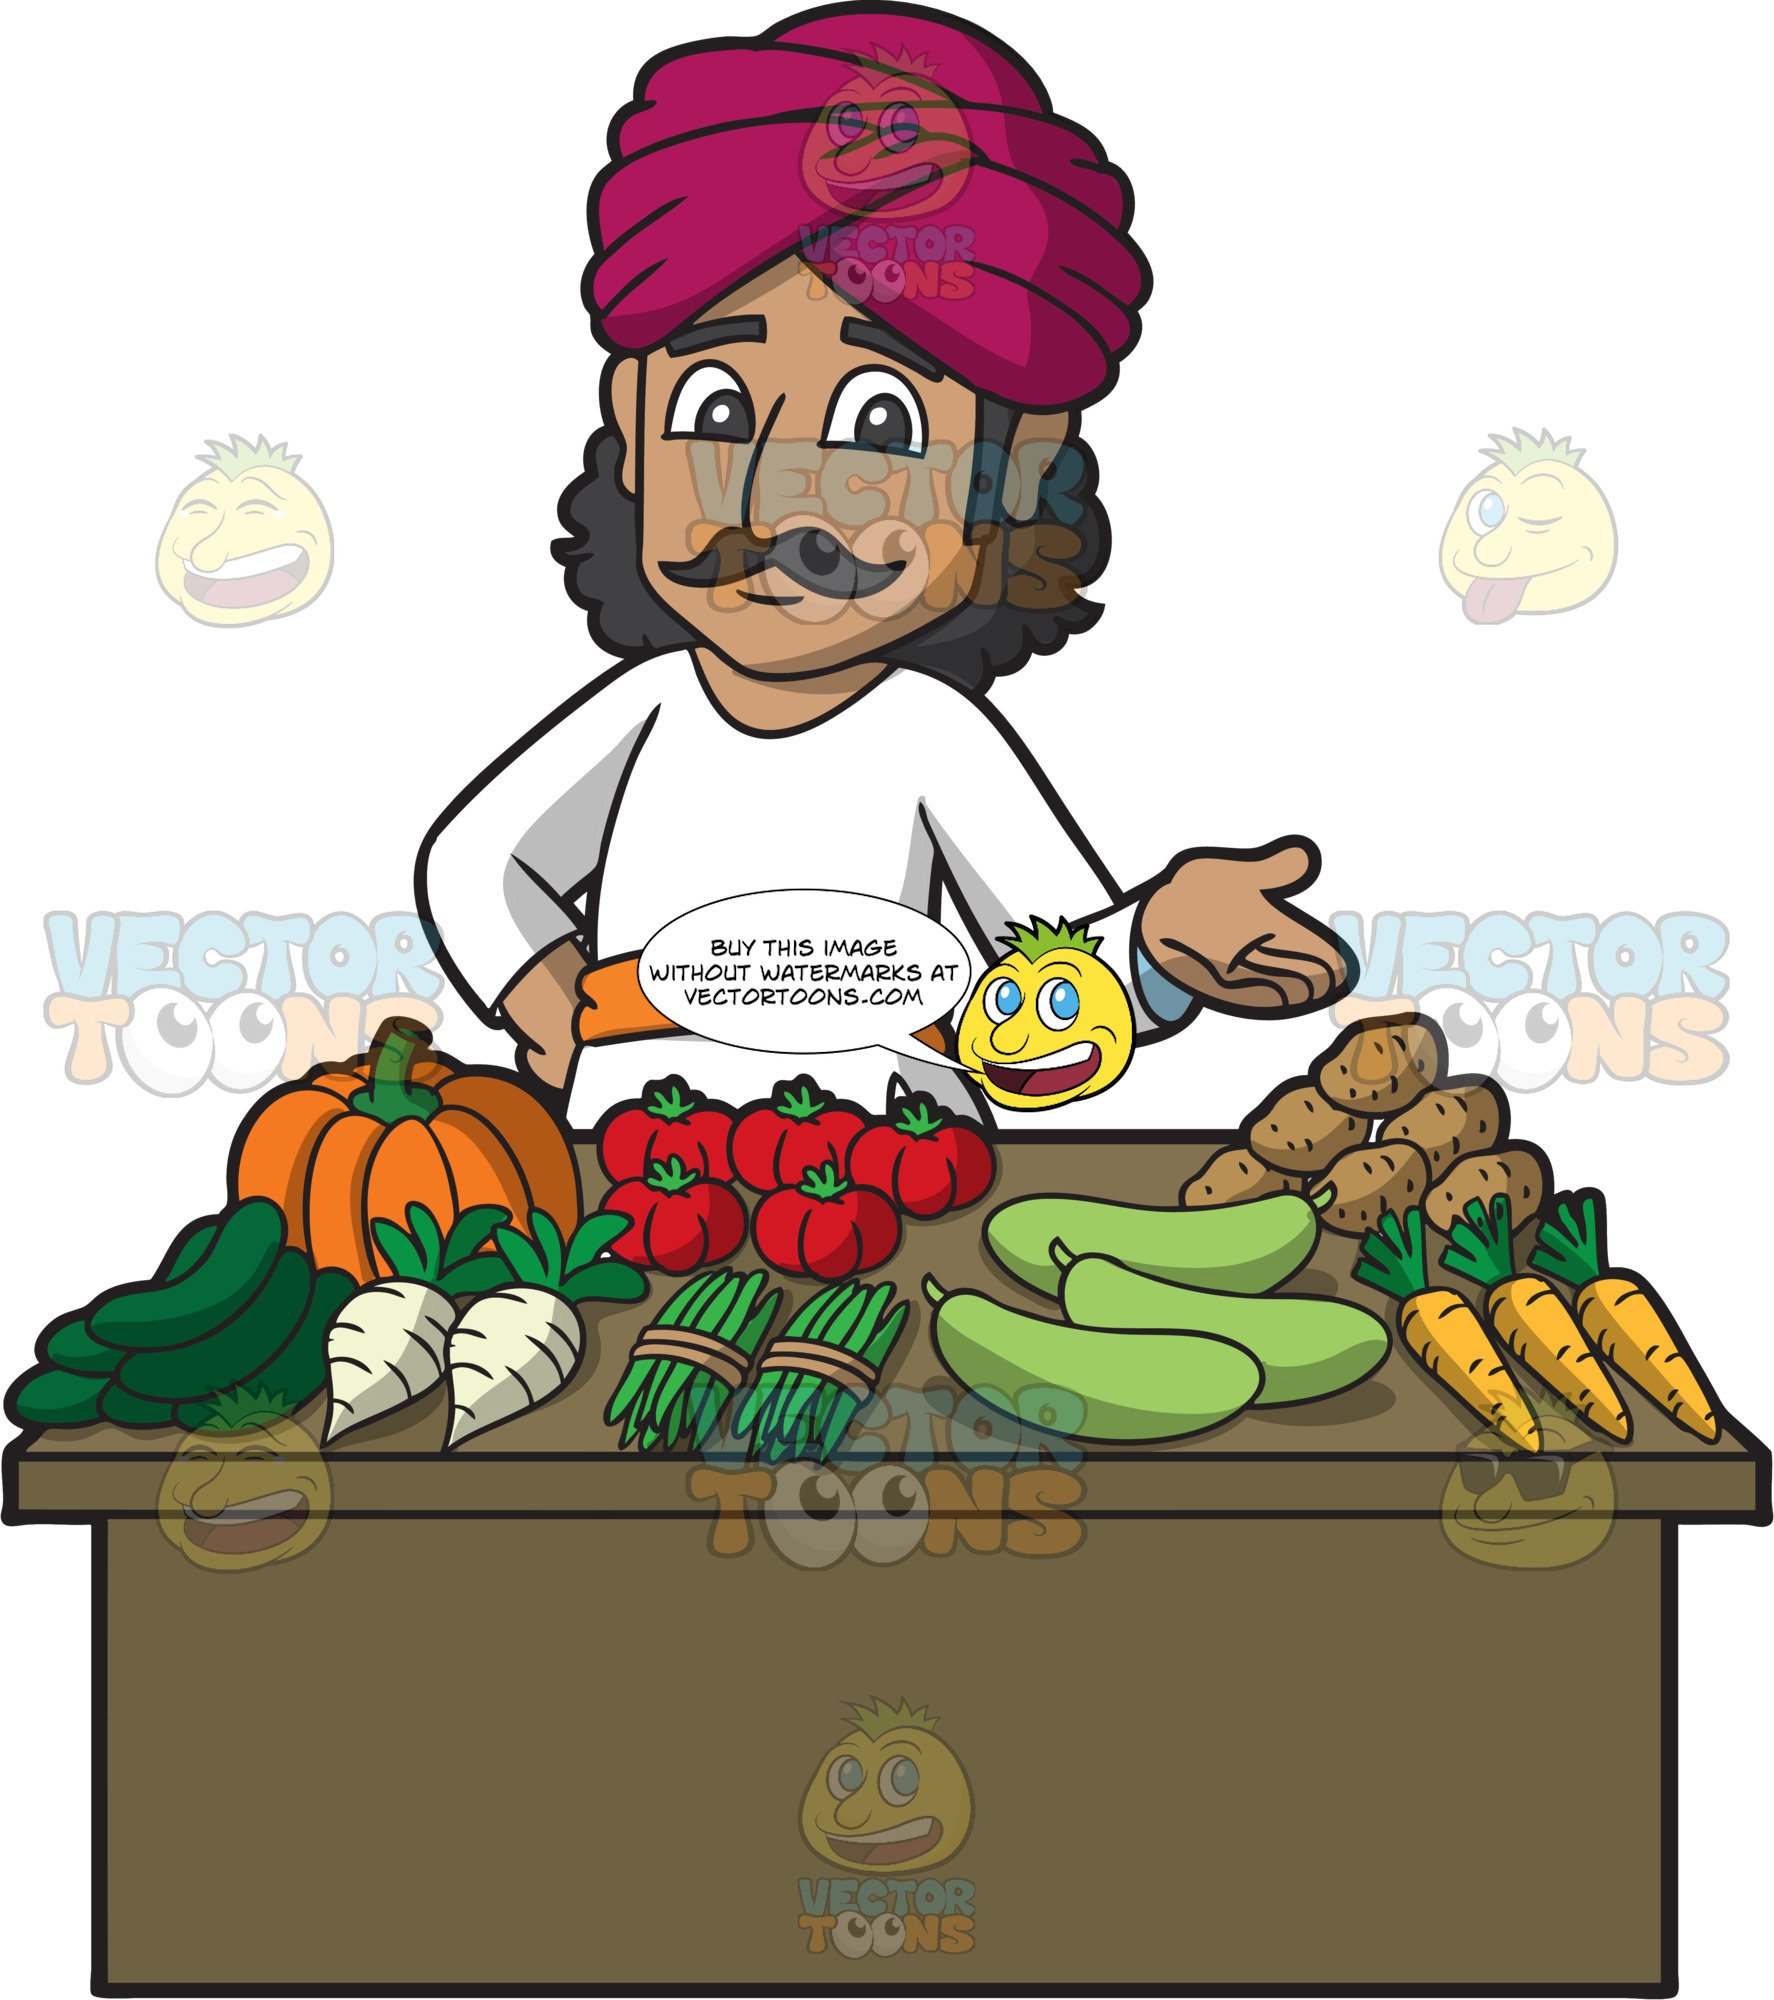 A Friendly Indian Merchant Selling Vegetables.